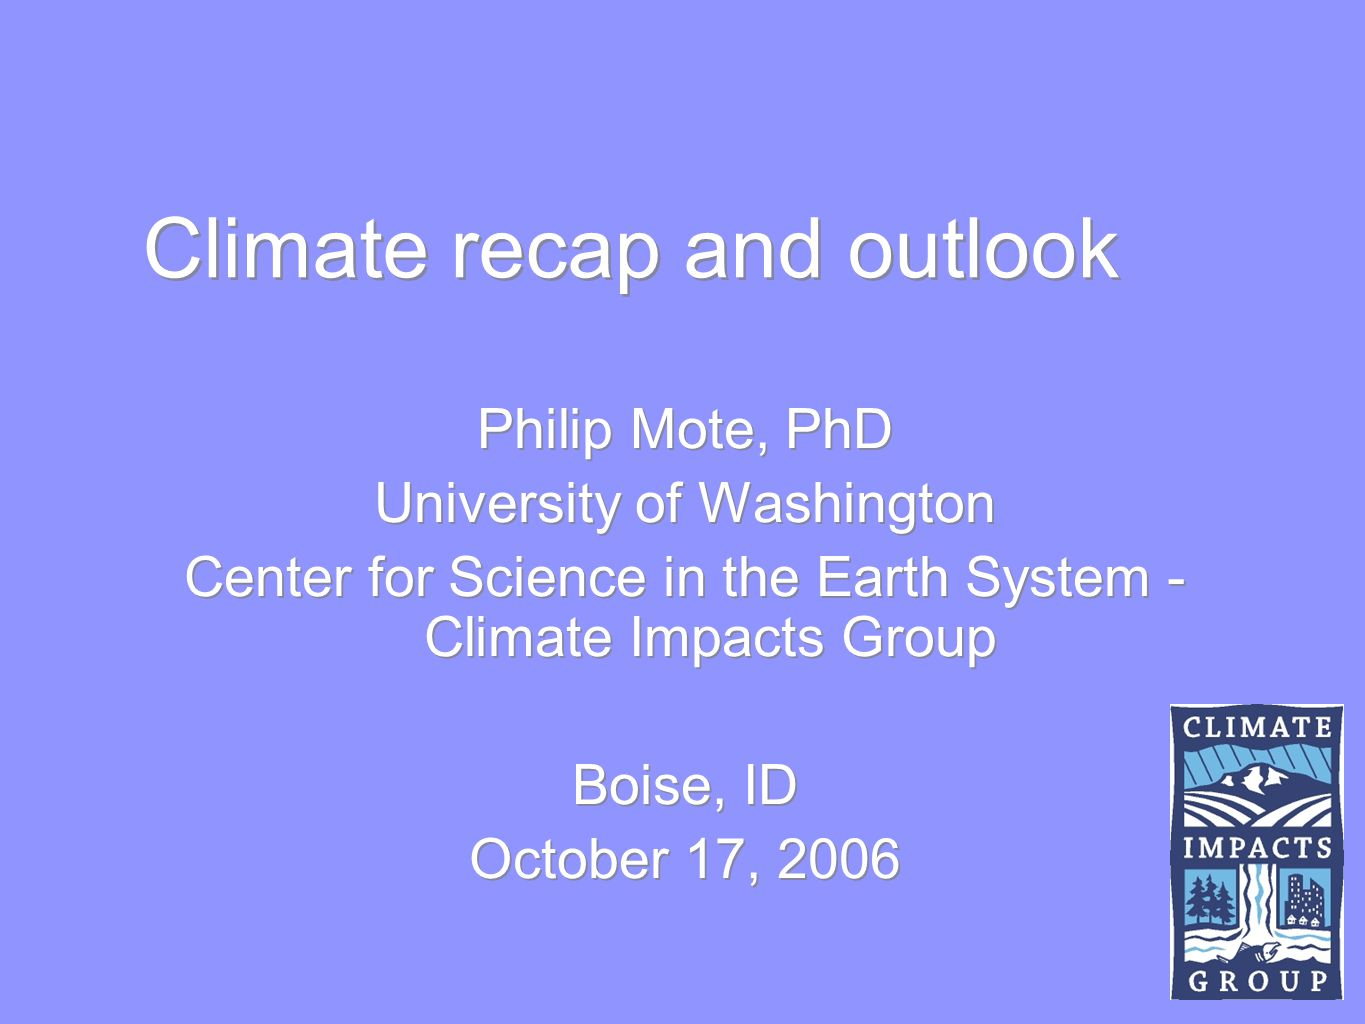 Climate recap and outlook Philip Mote, PhD University of Washington Center for Science in the Earth System - Climate Impacts Group Boise, ID October 17, 2006 Philip Mote, PhD University of Washington Center for Science in the Earth System - Climate Impacts Group Boise, ID October 17, 2006